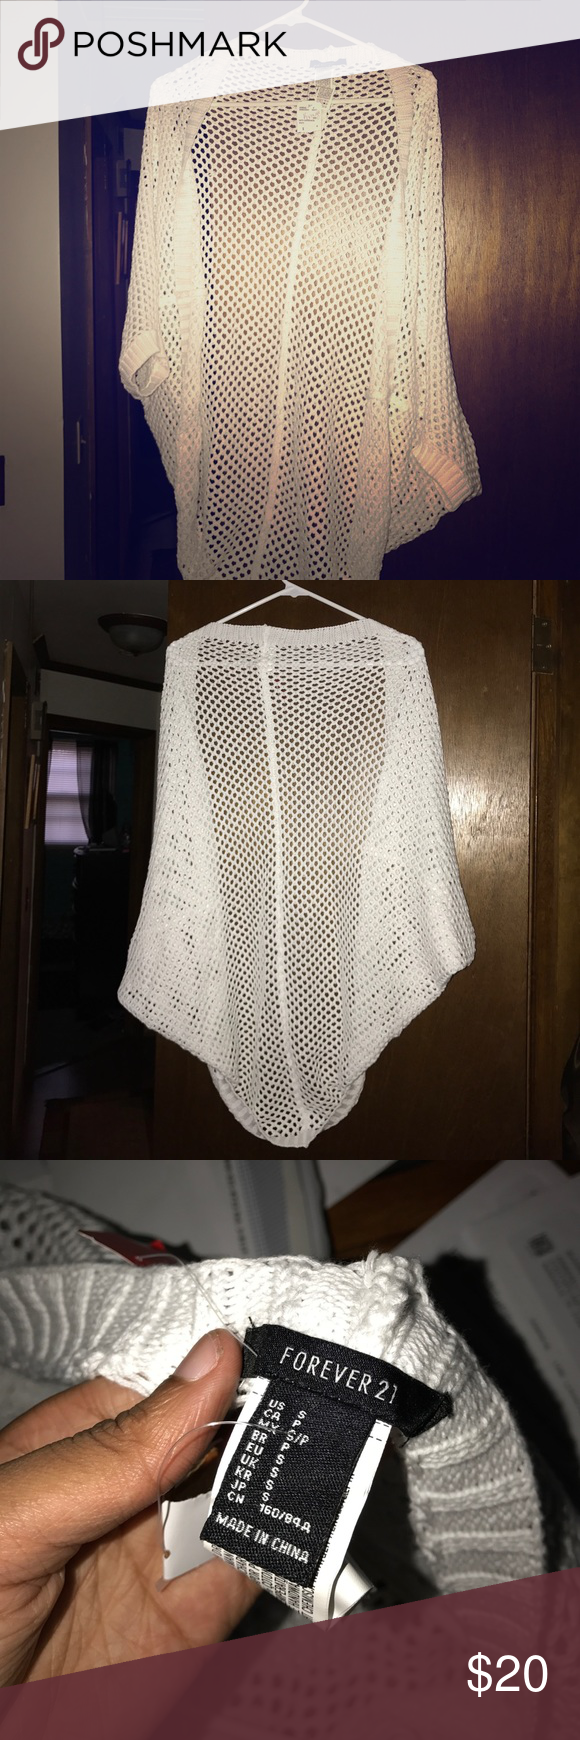 Knitted Cover Up !! Brand New all white cute knitted cover up !! Forever 21 Sweaters Shrugs & Ponchos